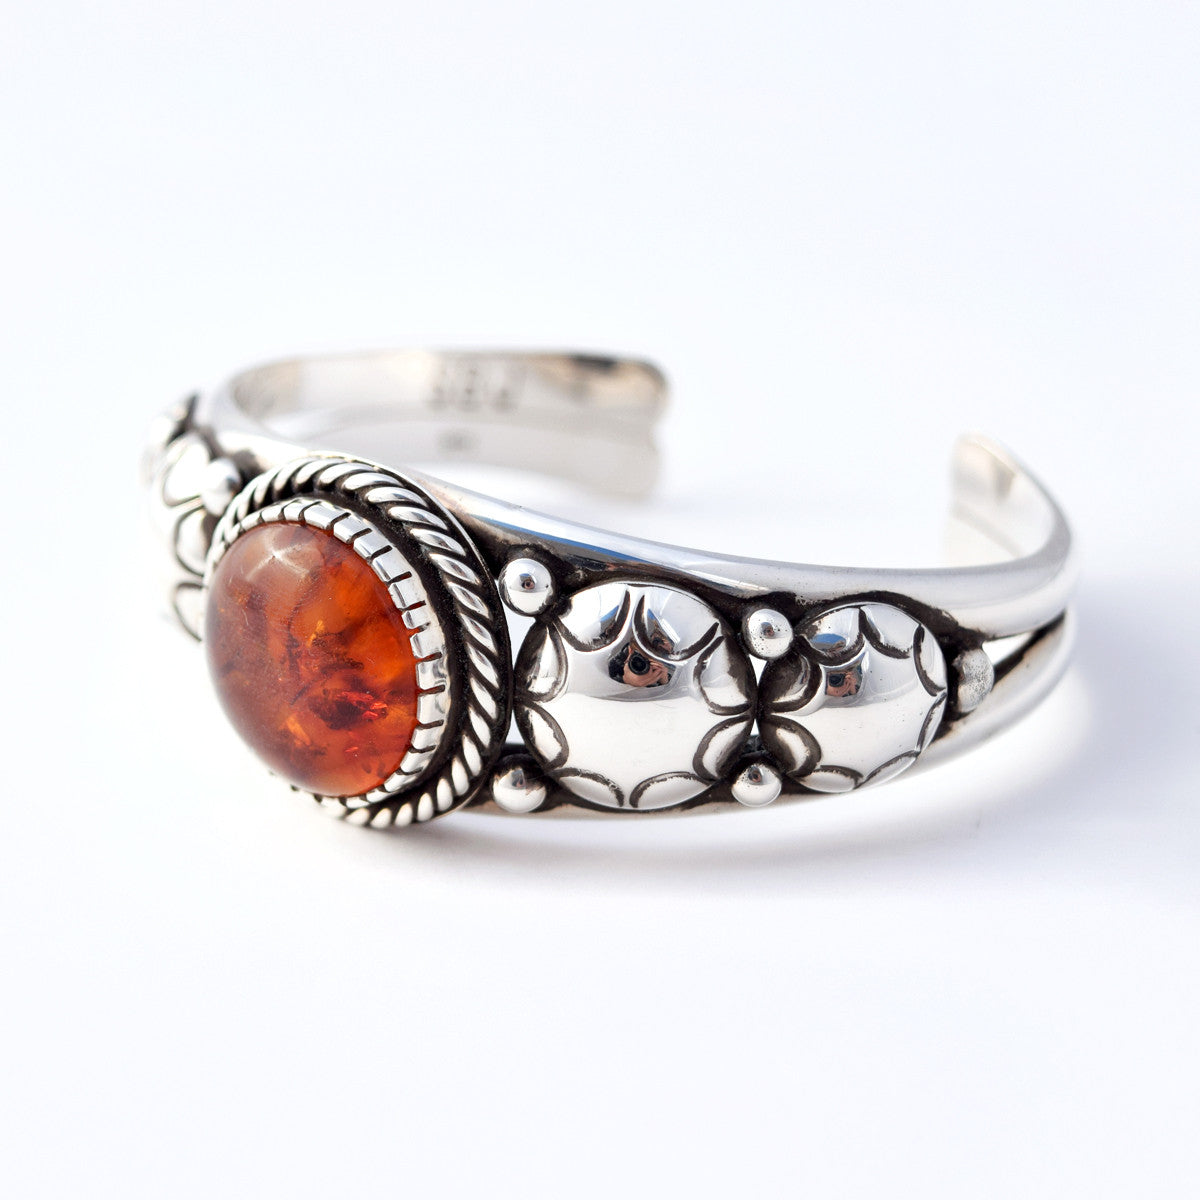 The Amber and Sterling Cuff Bracelet